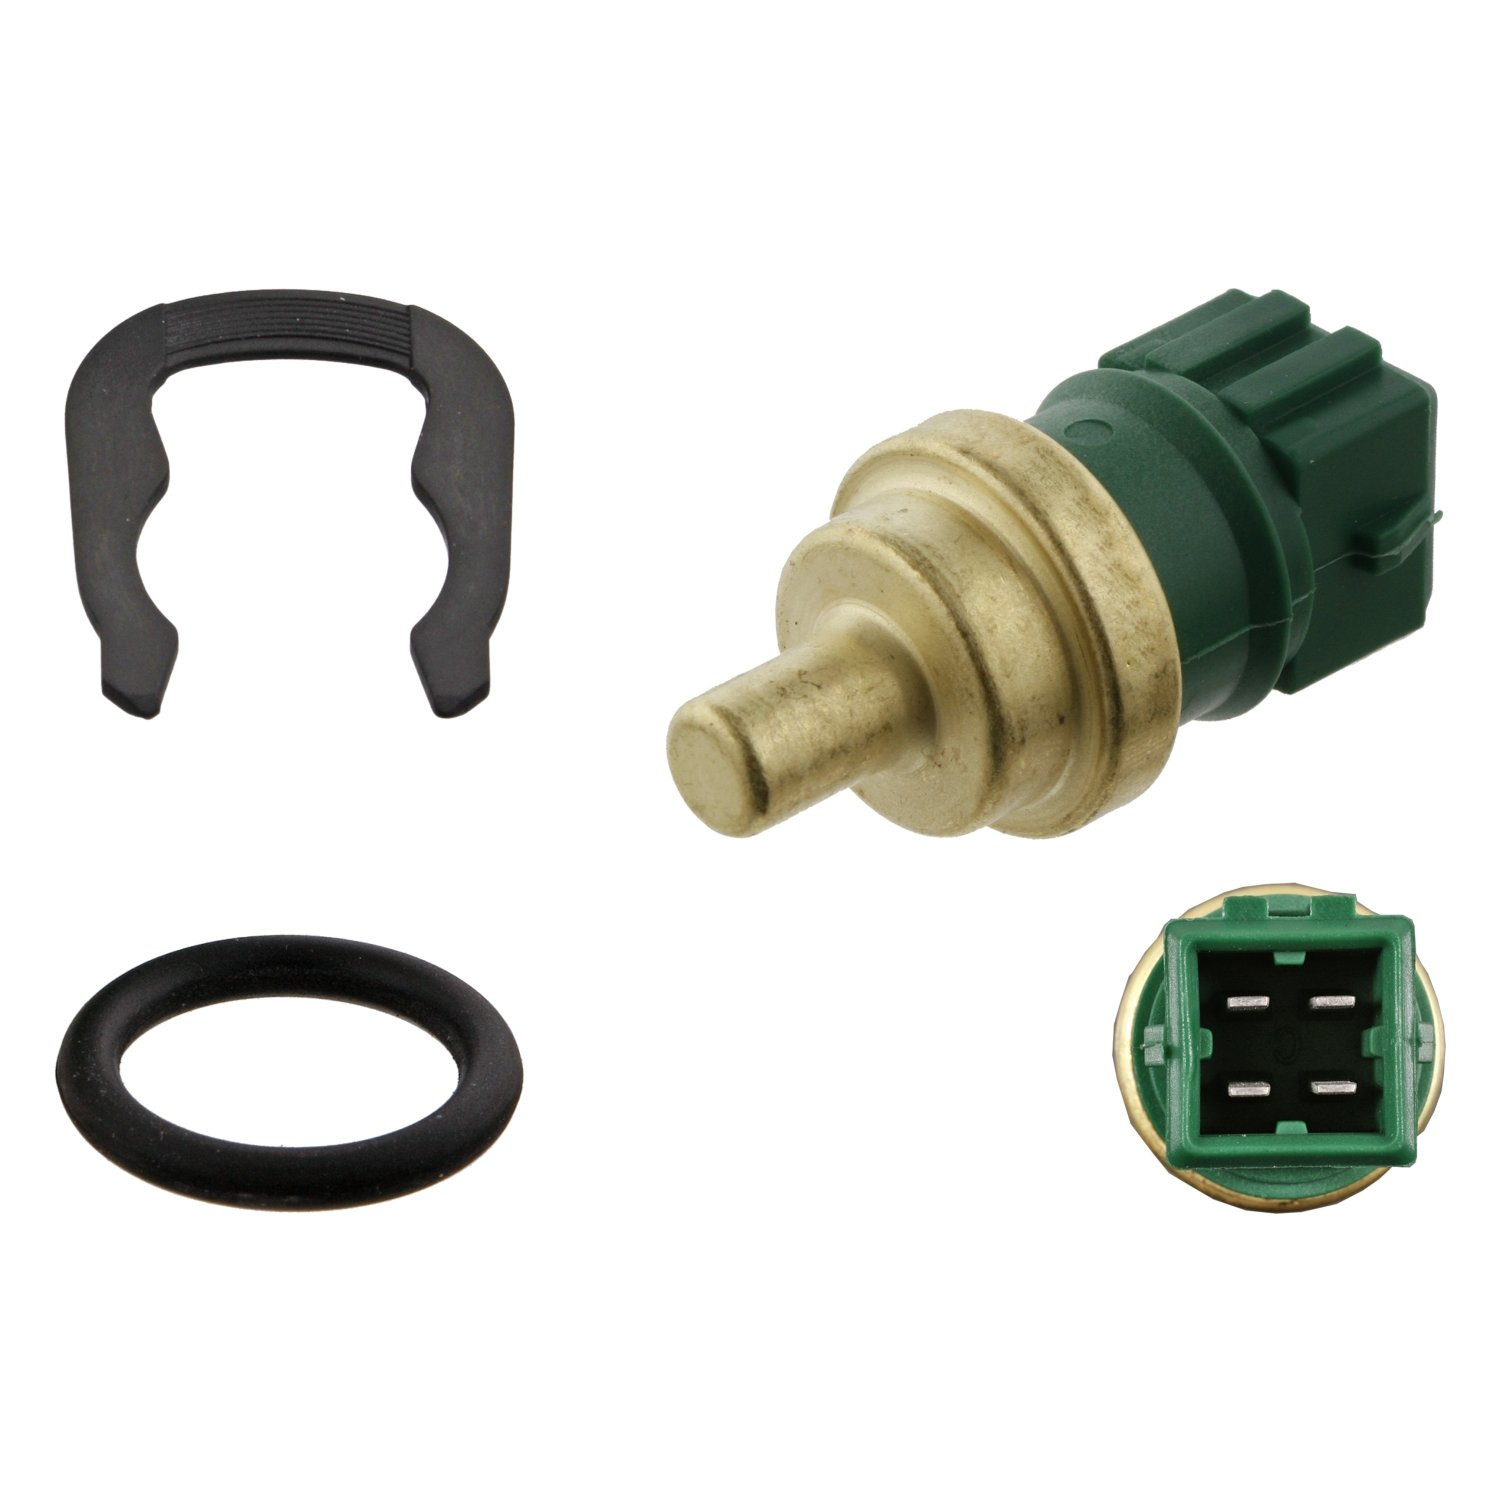 febi bilstein 31539 Coolant Temperature Sensor with seal and retaining spring pack of one